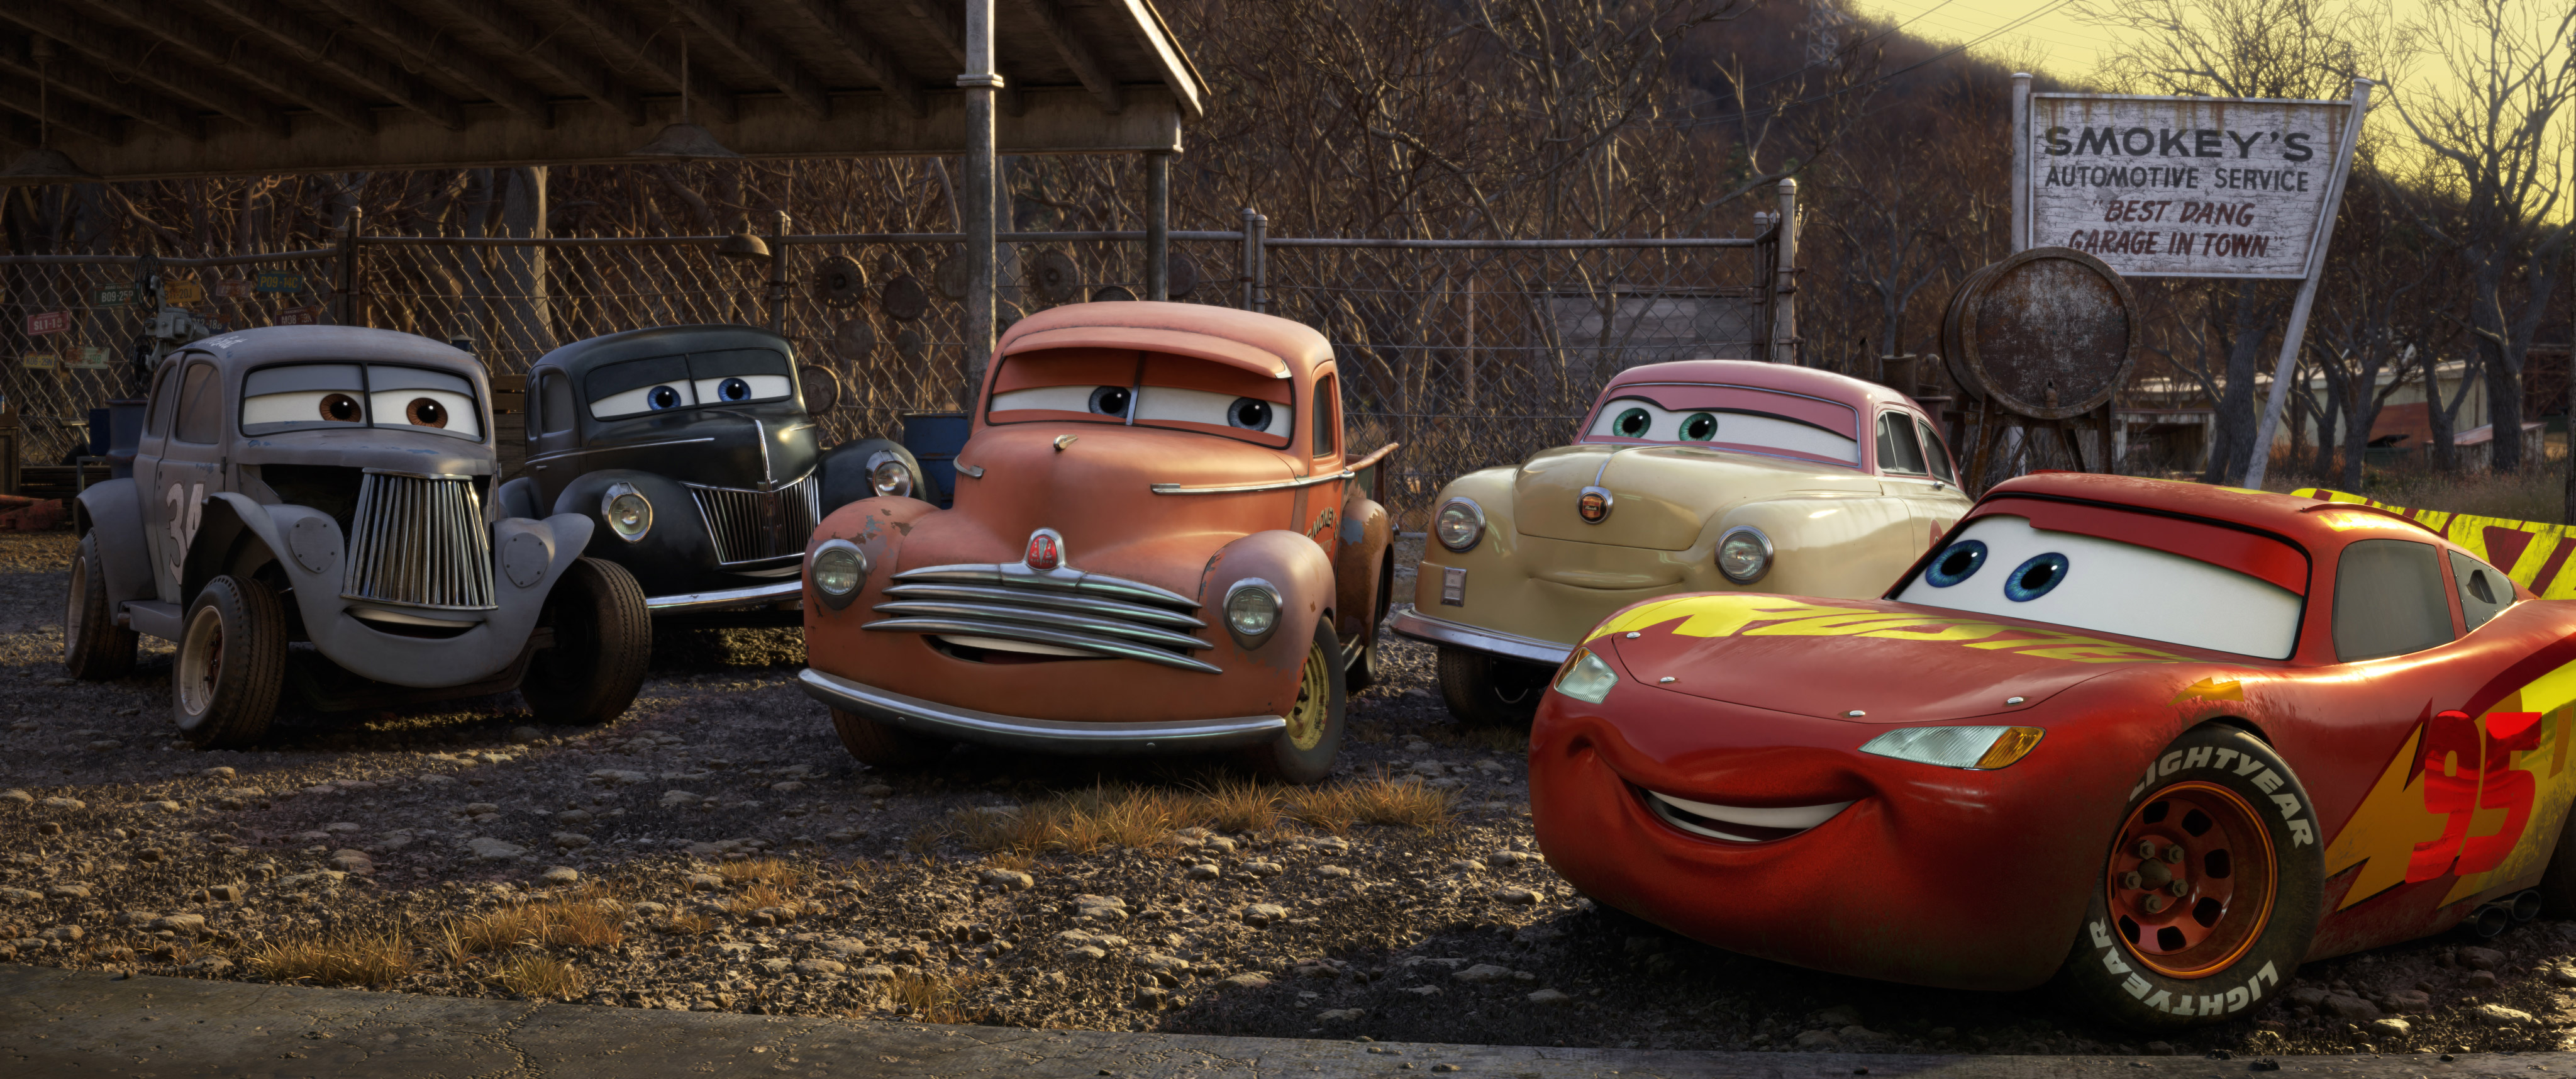 Cars 3 2017 Animated Movie Hd Movies 4k Wallpapers